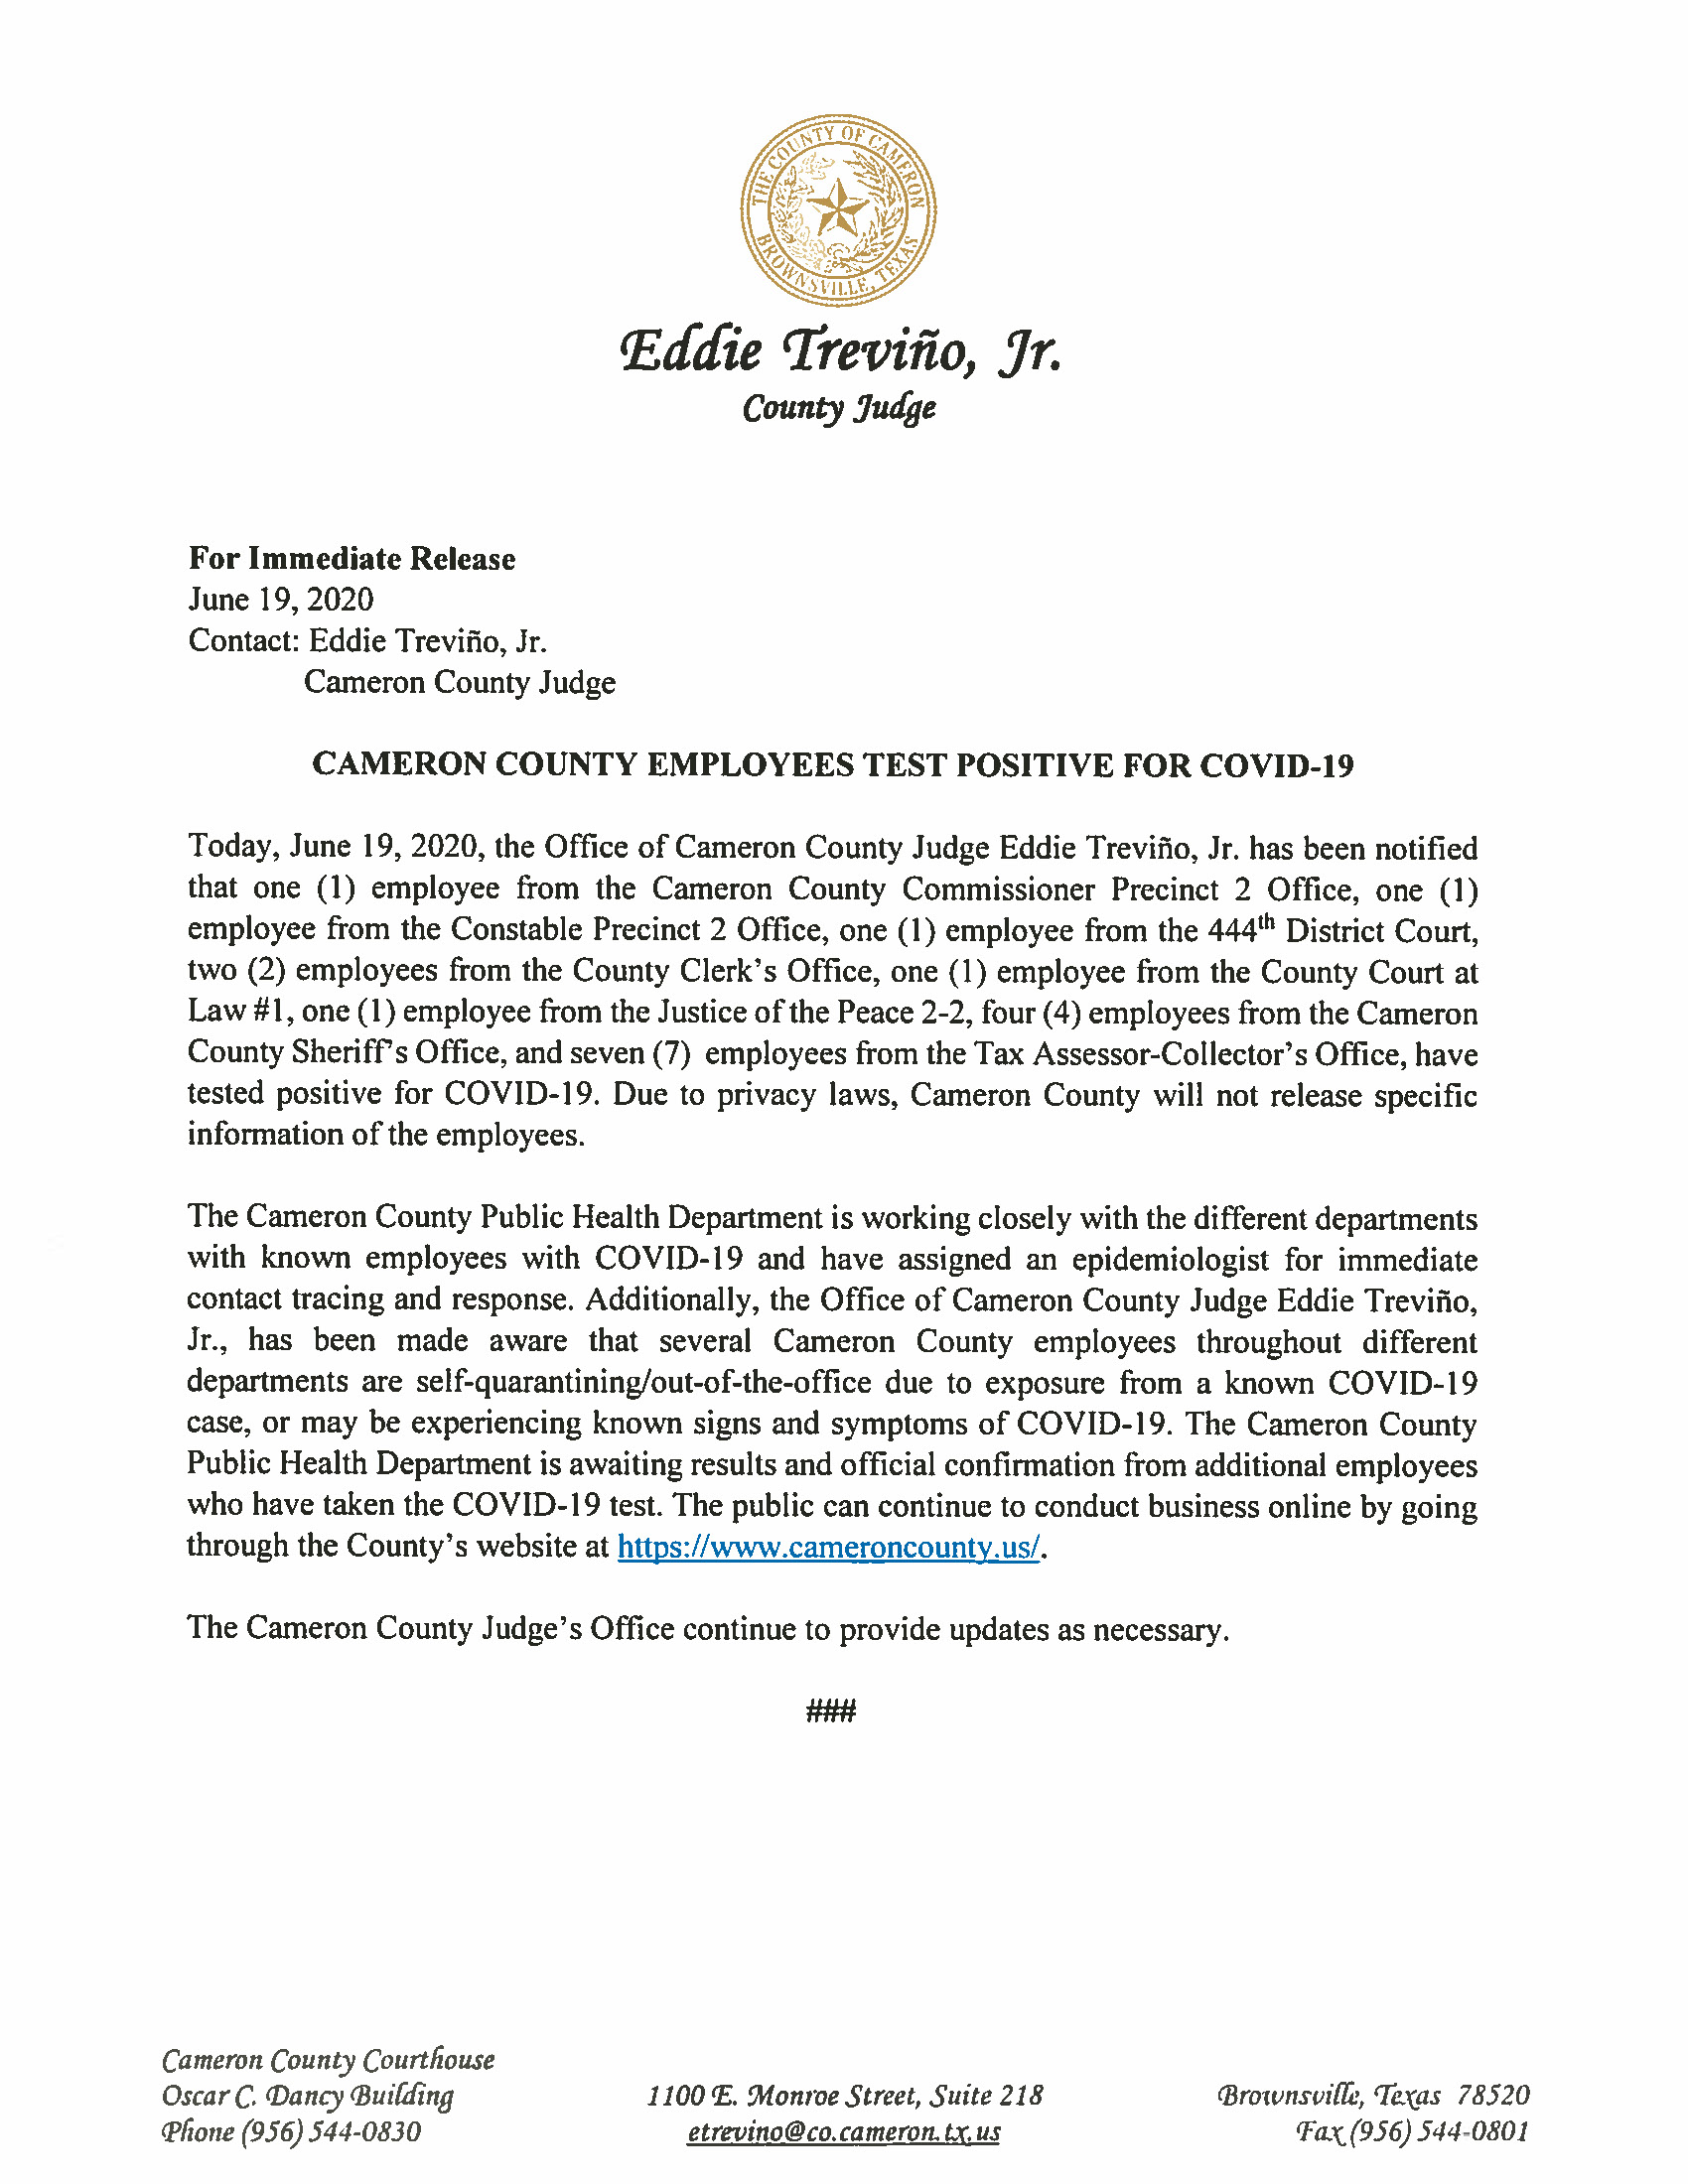 06.19.2020 Cameron County Employees Test Positive For COVID 19